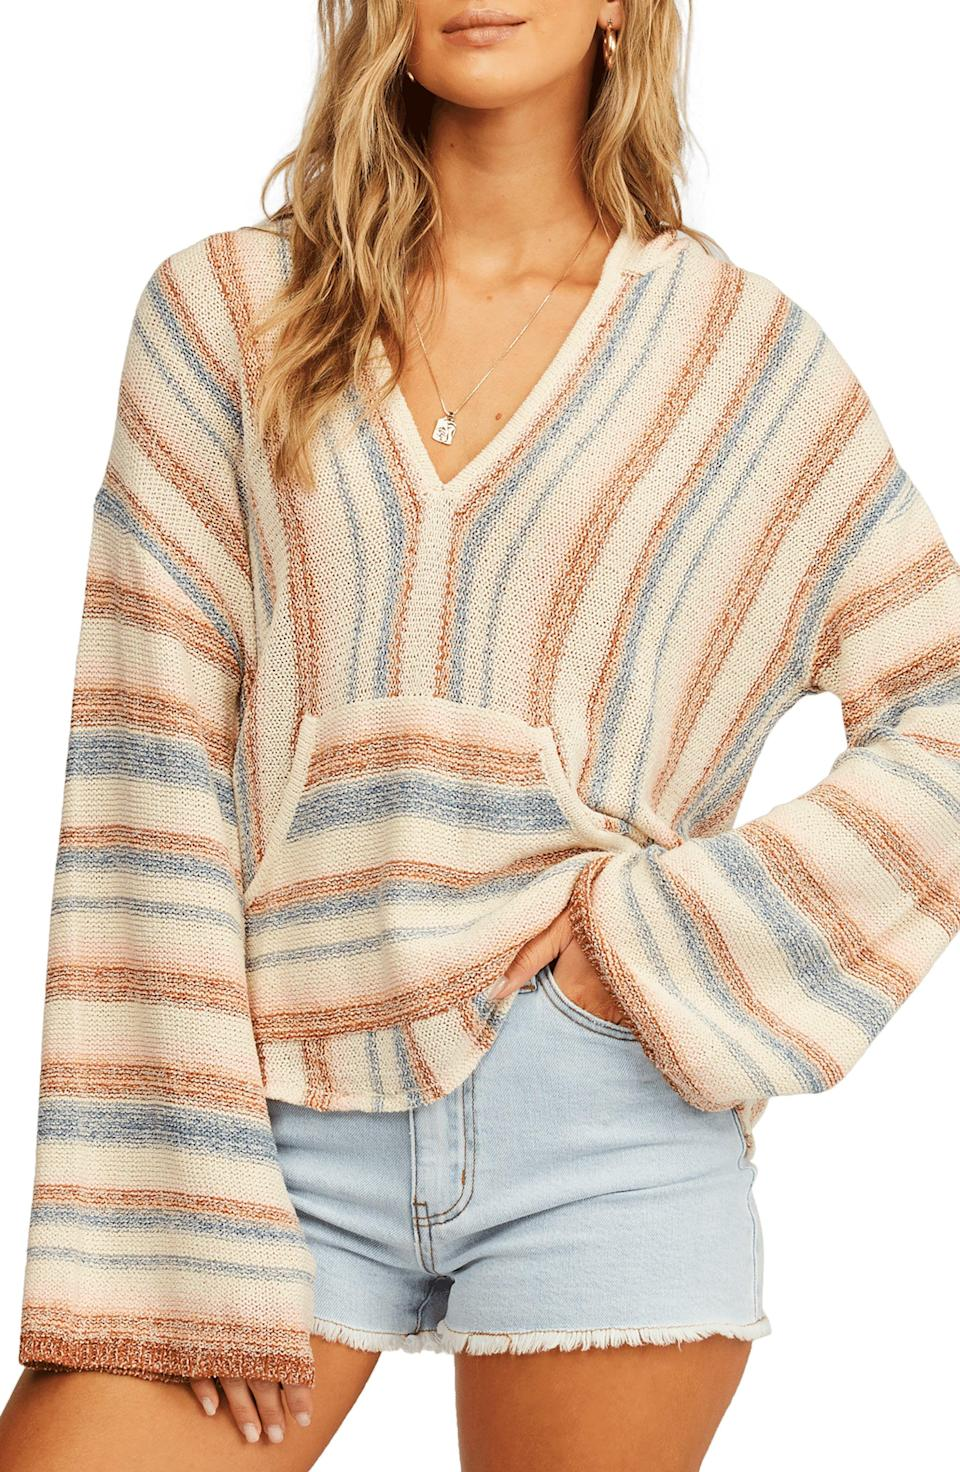 """<p><strong>Billabong</strong></p><p>nordstrom.com</p><p><strong>$65.95</strong></p><p><a href=""""https://go.redirectingat.com?id=74968X1596630&url=https%3A%2F%2Fwww.nordstrom.com%2Fs%2Fbillabong-baja-beach-stripe-hoodie%2F5891568&sref=https%3A%2F%2Fwww.womenshealthmag.com%2Flife%2Fg37511825%2Fbest-fall-sweaters%2F"""" rel=""""nofollow noopener"""" target=""""_blank"""" data-ylk=""""slk:Shop Now"""" class=""""link rapid-noclick-resp"""">Shop Now</a></p><p>Whether you're actually wearing this over your bathing suit at the beach or are pairing it with jeans, riding boots, and tropical daydreams, this cozy hoodie is the perfect transitional piece. </p><p>It's lightweight enough for warmer temps, but cozy enough to cuddle up in on a cool fall evening.</p>"""